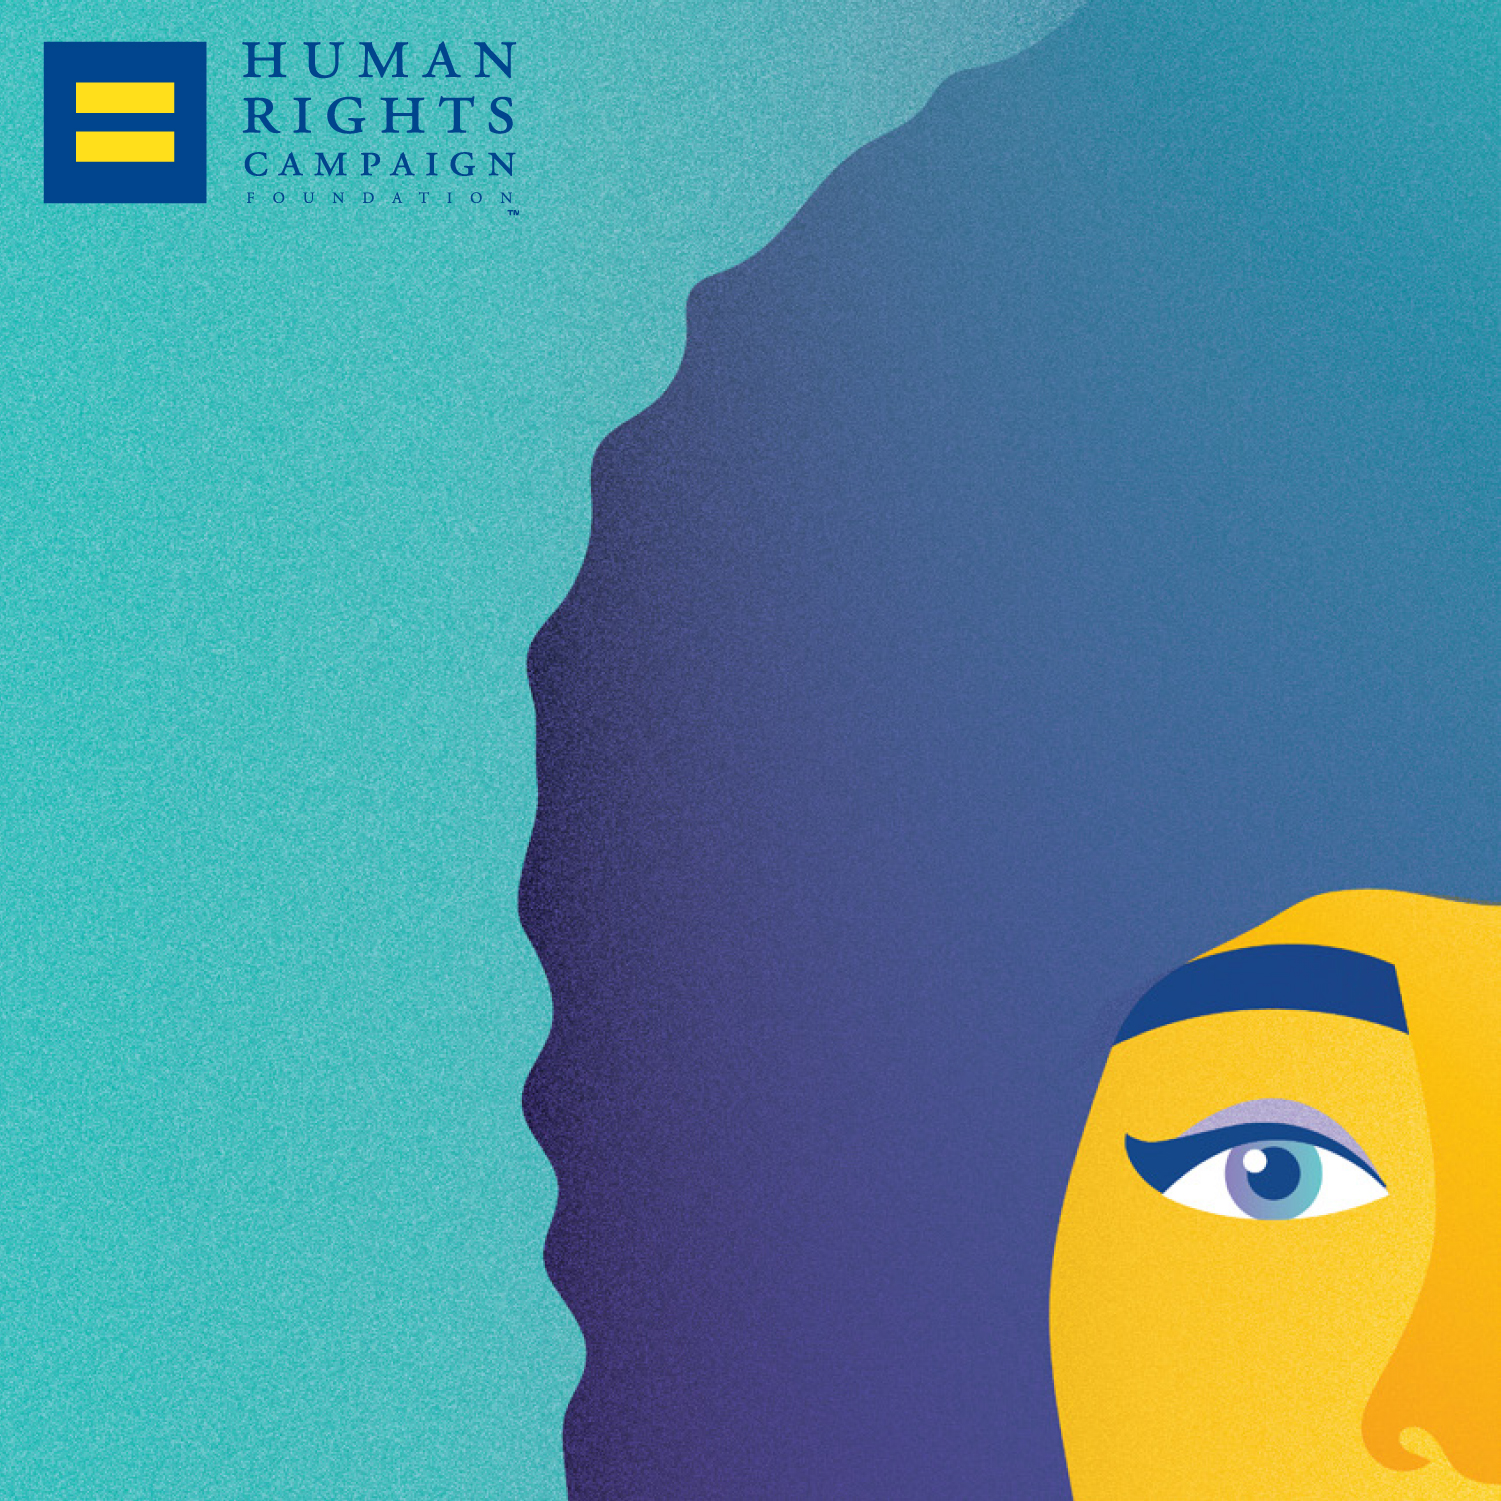 Human Rights Campaign:Misperceptions Matter - In both conventional and misperception discrimination cases, the employer's stereotypes, biases, or prejudices motivate the differential treatment the victim suffers.